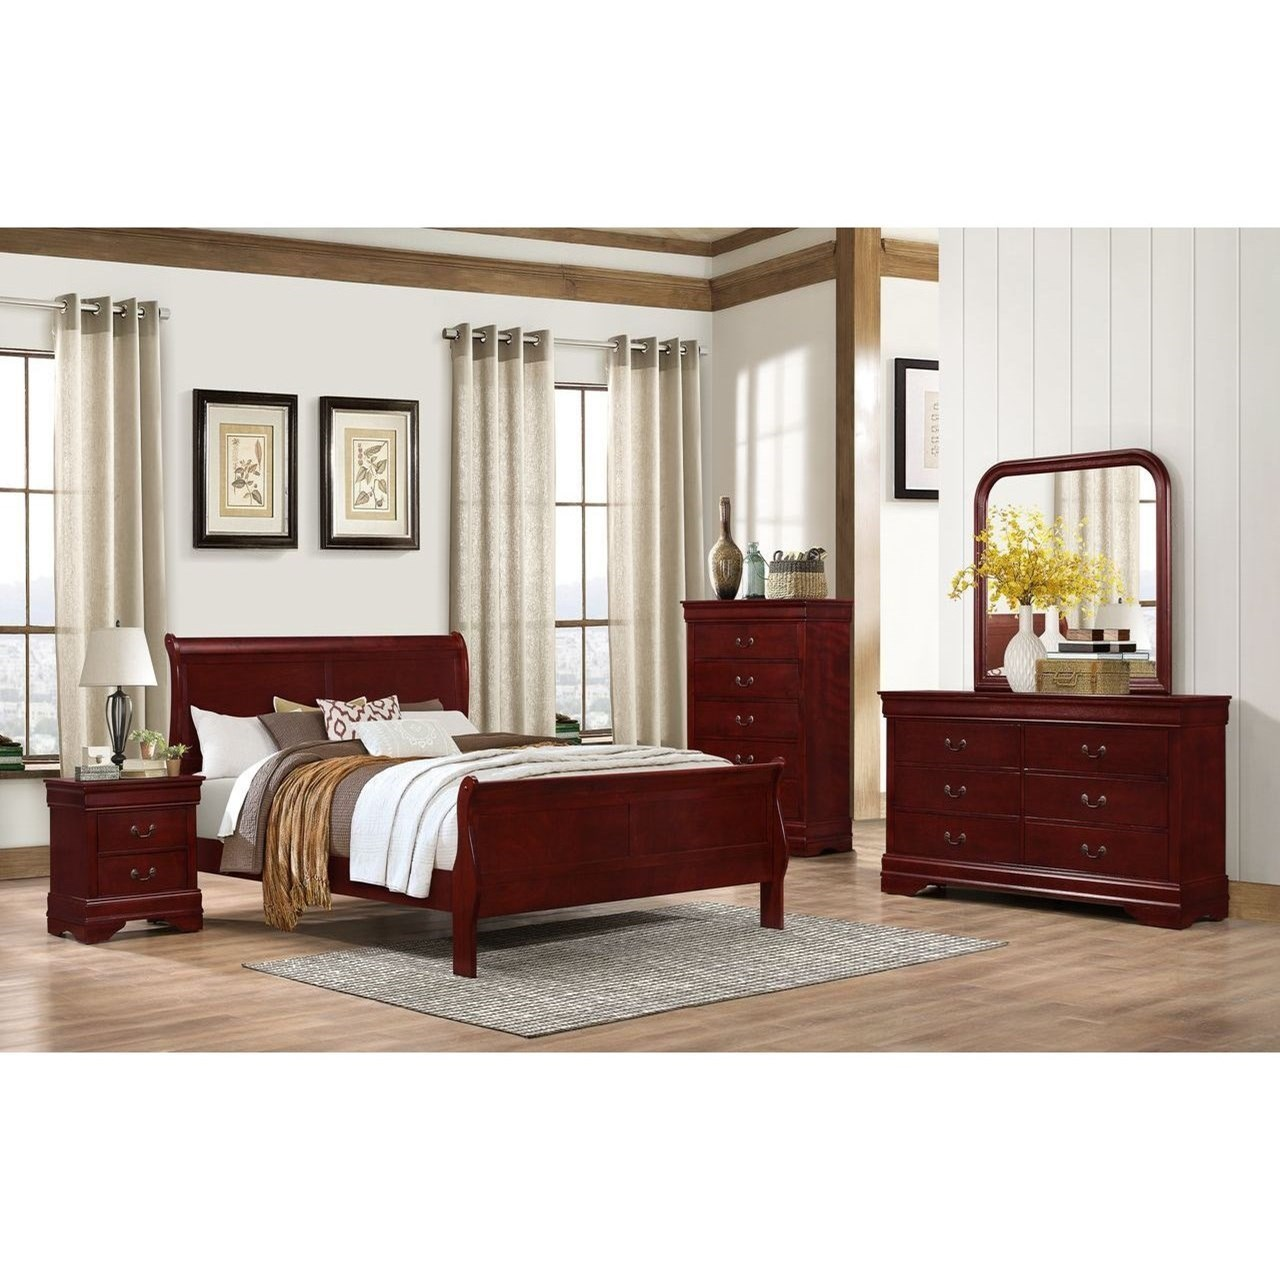 lifestyle 4937 queen bedroom group beck s furniture bedroom groups rh becksfurniture com lifestyle bedroom furniture india lifestyle solutions bedroom furniture reviews